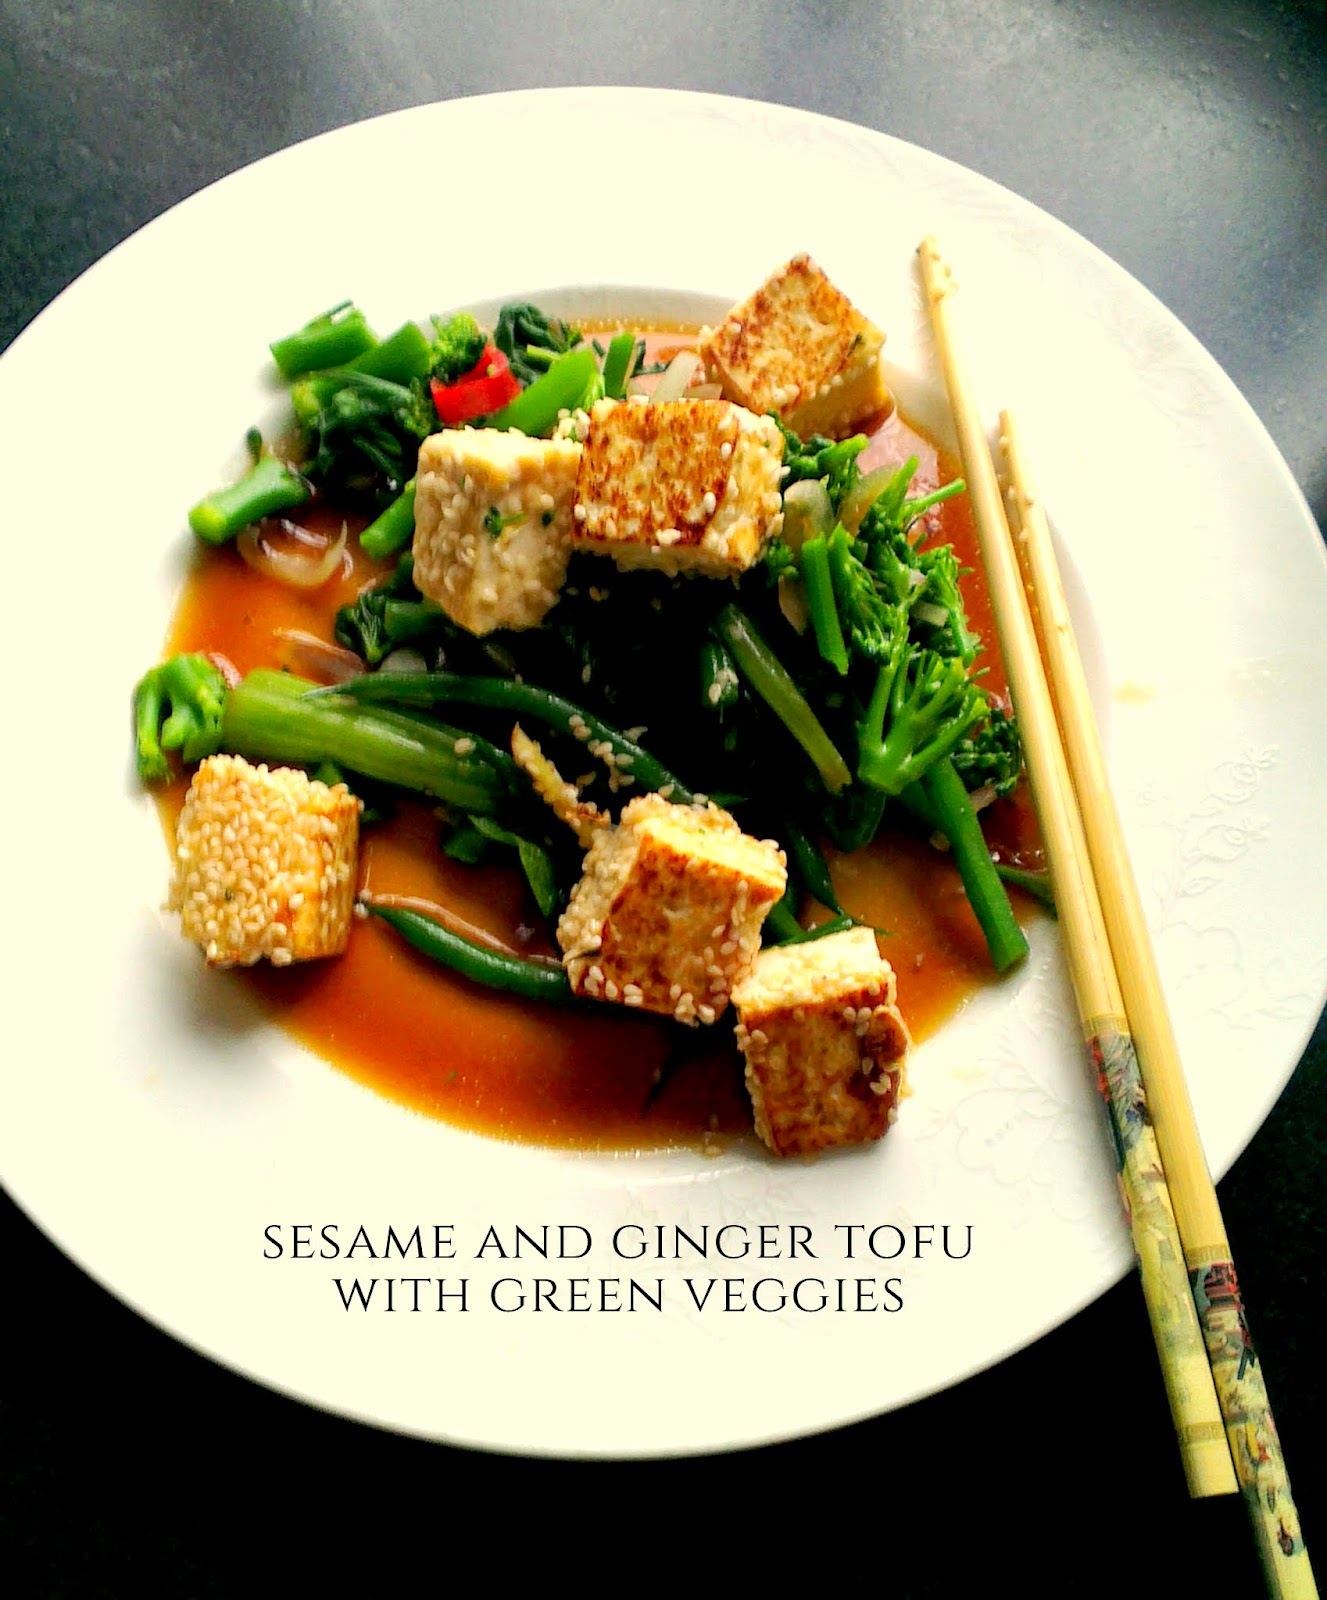 Crispy sesame and ginger tofu